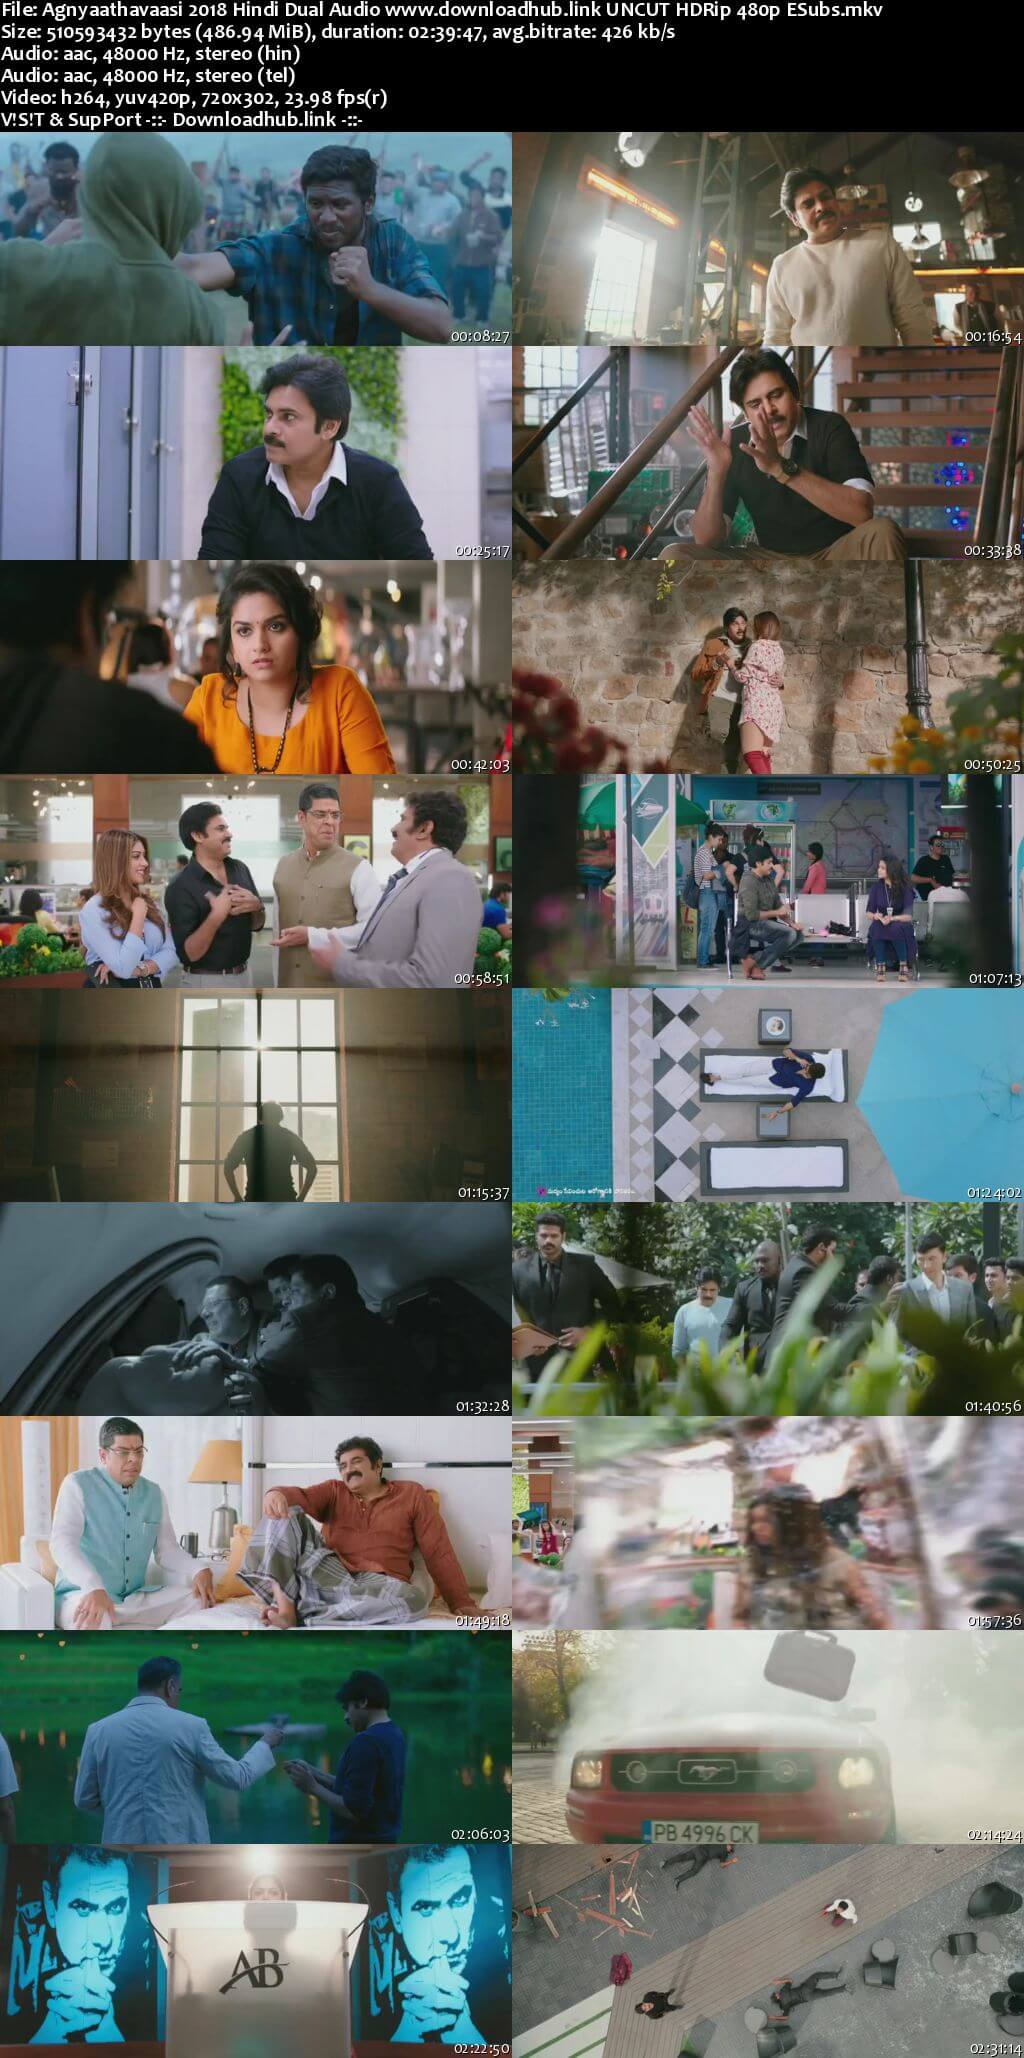 Agnyaathavaasi 2018 Hindi Dual Audio 450MB UNCUT HDRip 480p ESubs